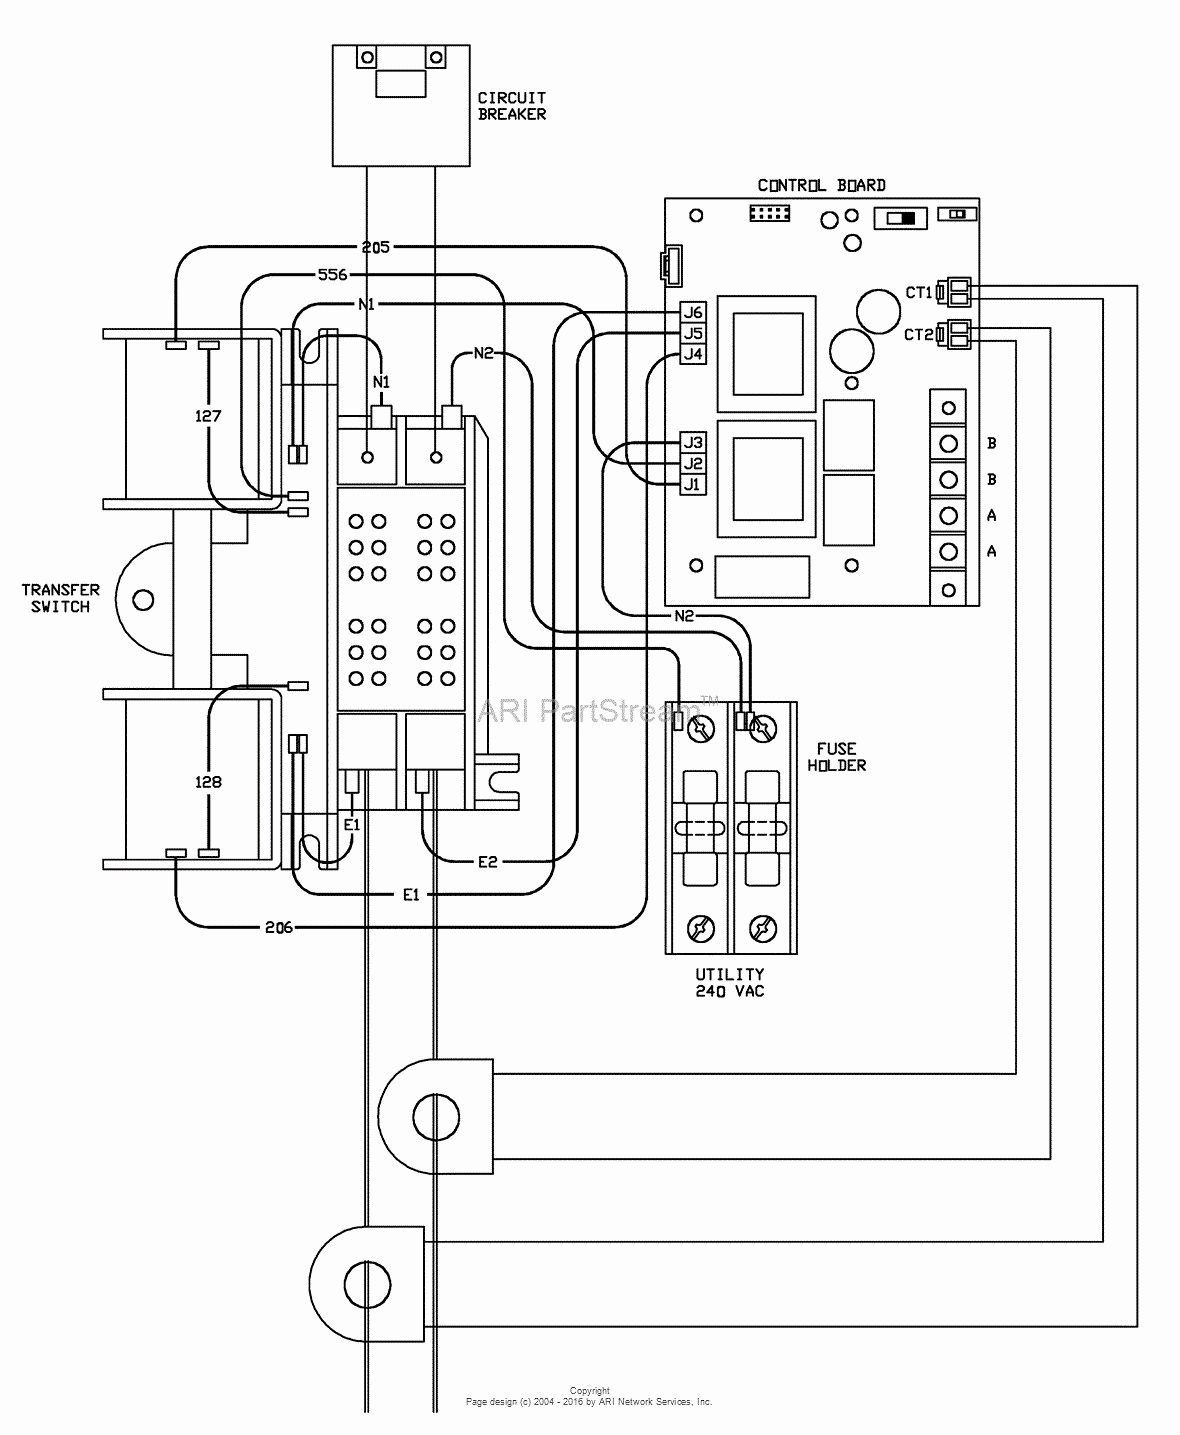 hight resolution of generac ignition switch wiring diagram schematic diagramgenerac ats wiring diagram two wire start wiring diagram voltage